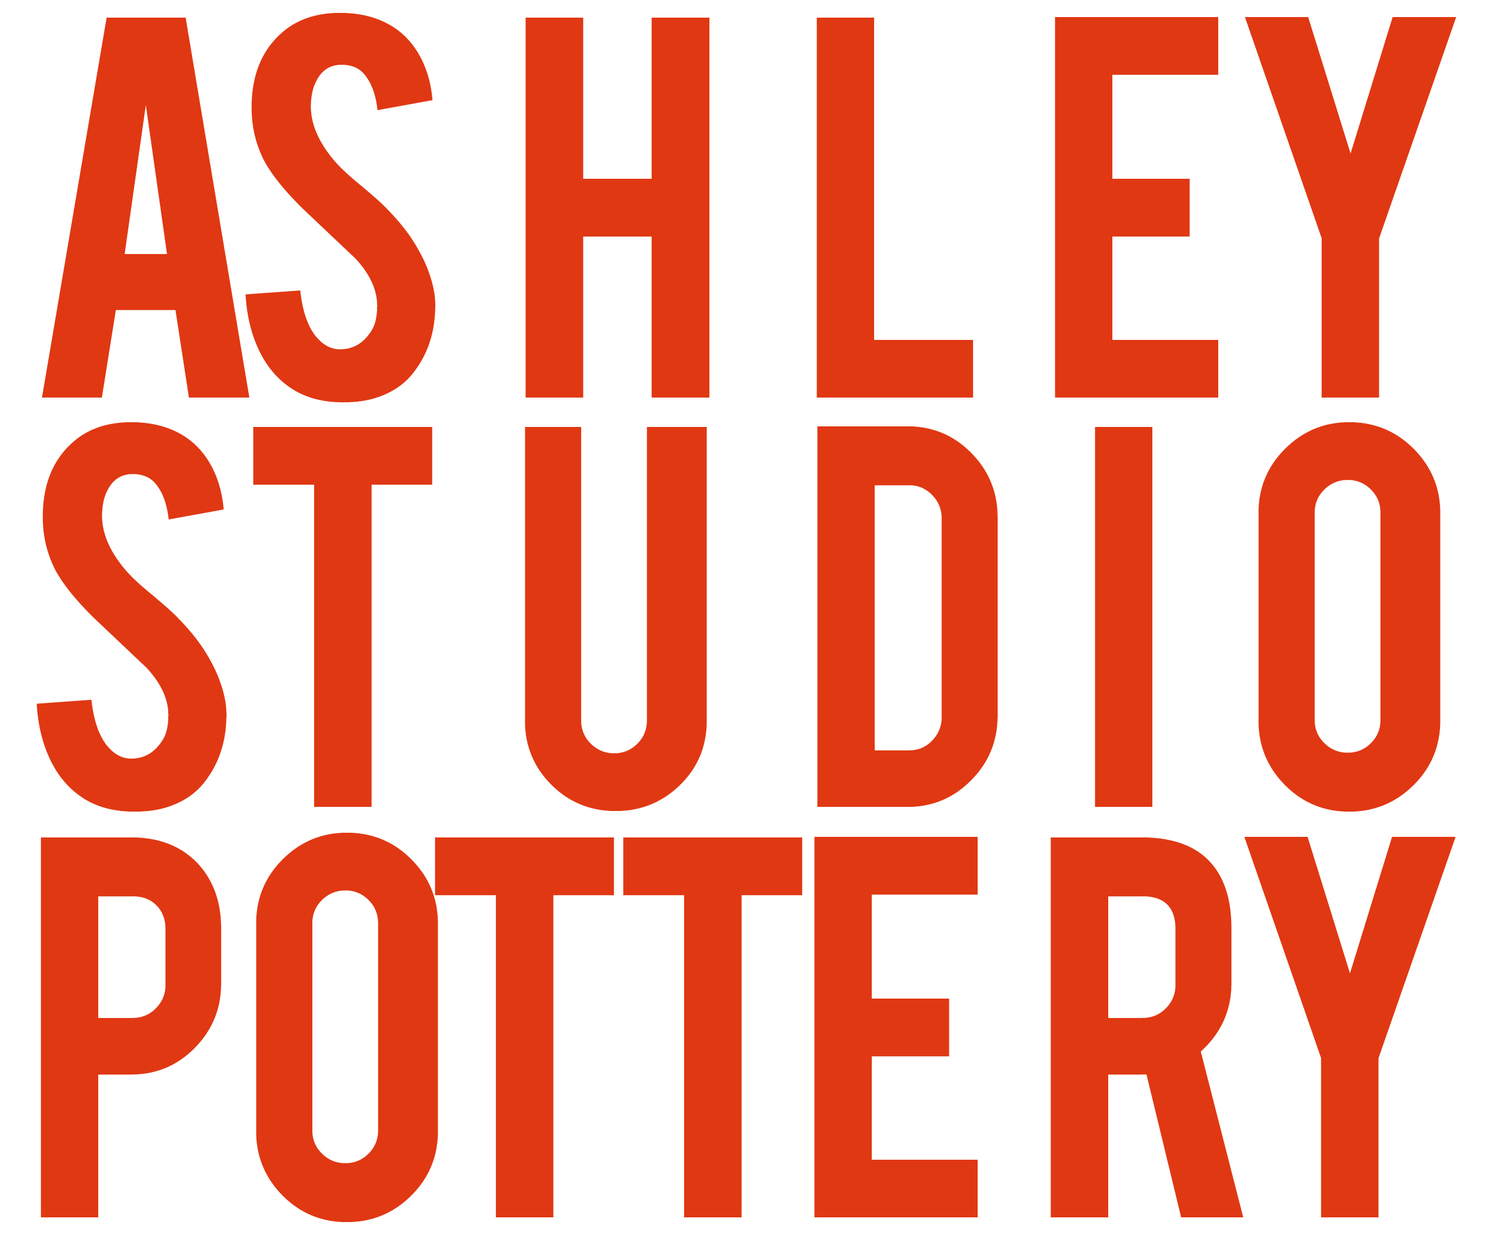 Ashley Studio Pottery